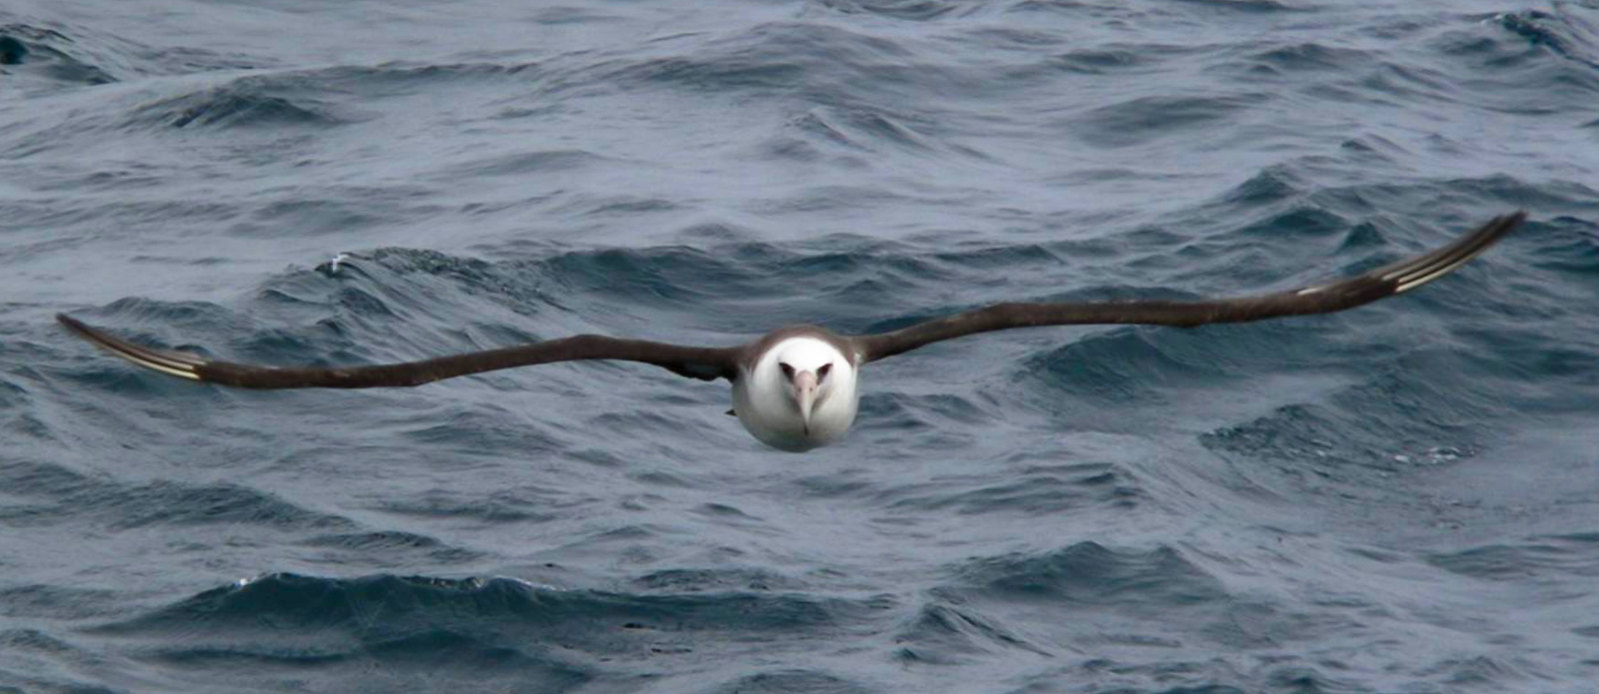 Mōlī, like other pelagic birds, spend most of their lives at sea.<br>Elizabeth Labunski / U.S.Fish and Wildlife Service